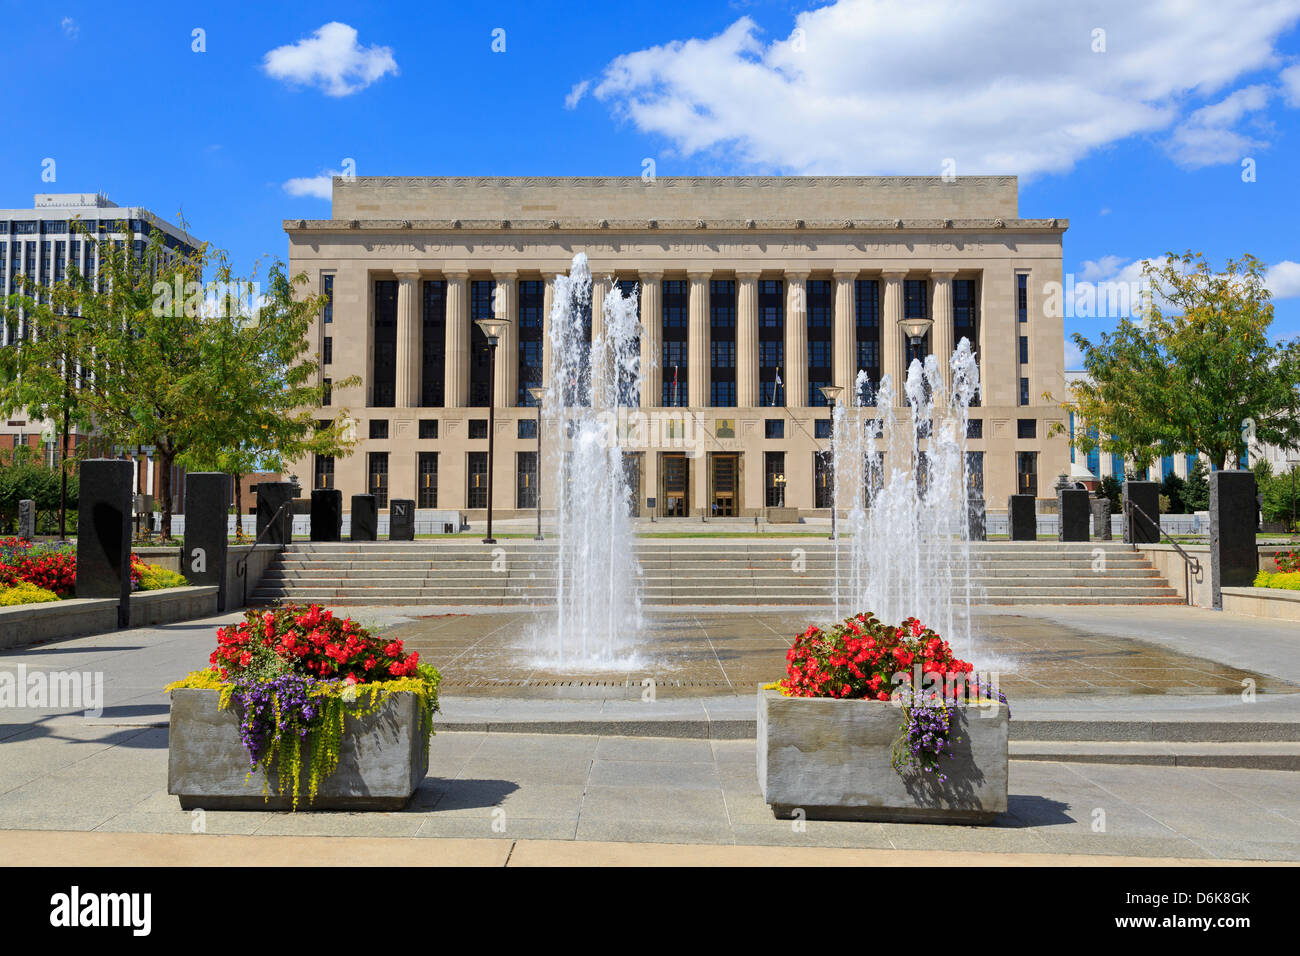 Metro Courthouse Public Square, Nashville, Tennessee, United States of America, North America - Stock Image